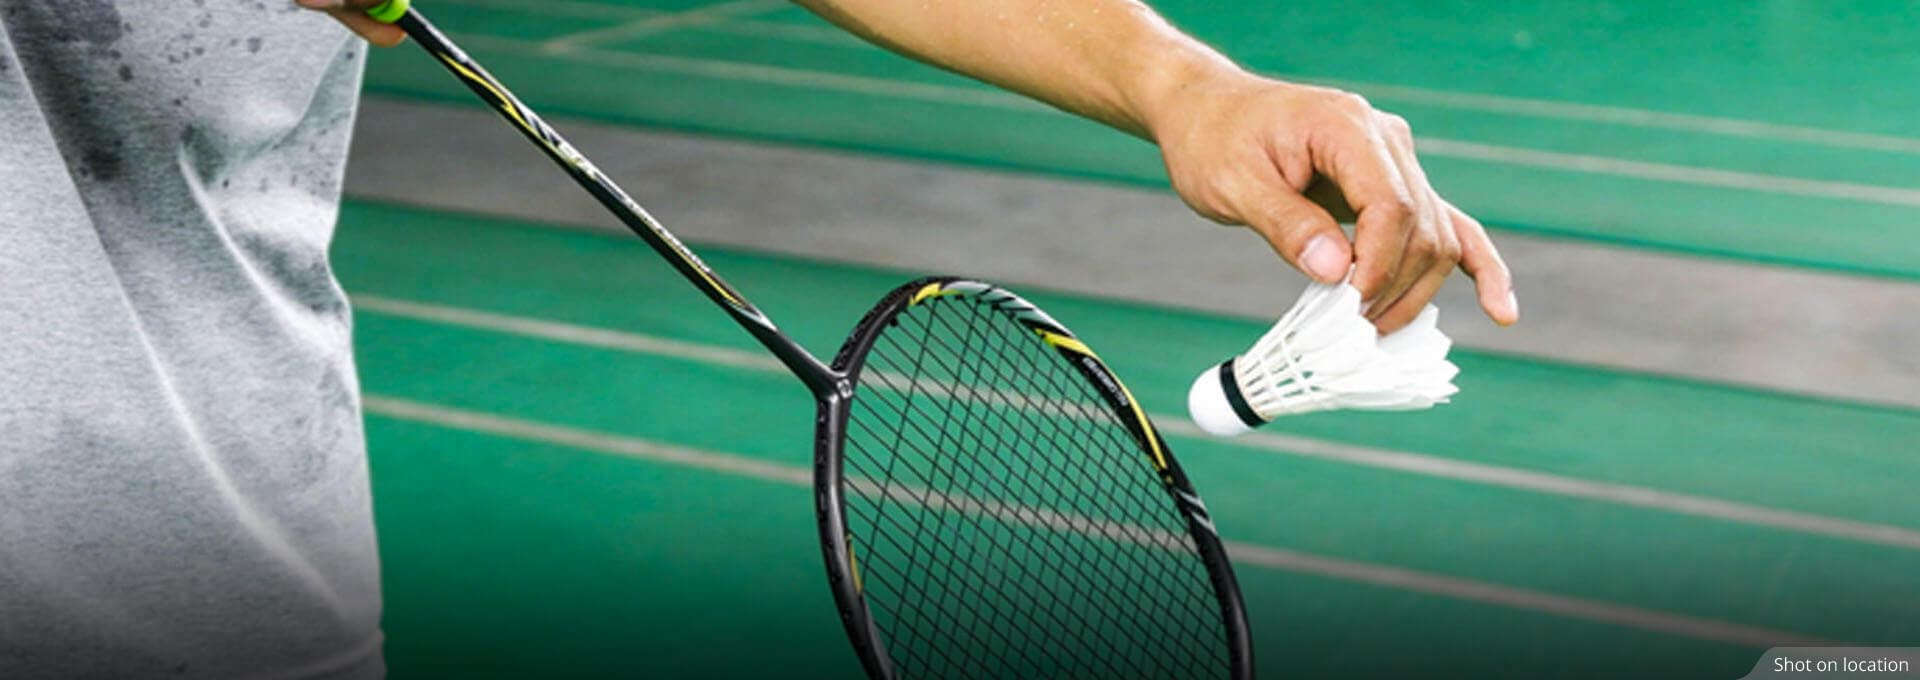 Badminton in Club Medows by House of Hirandani in Bannerghatta, Bengaluru